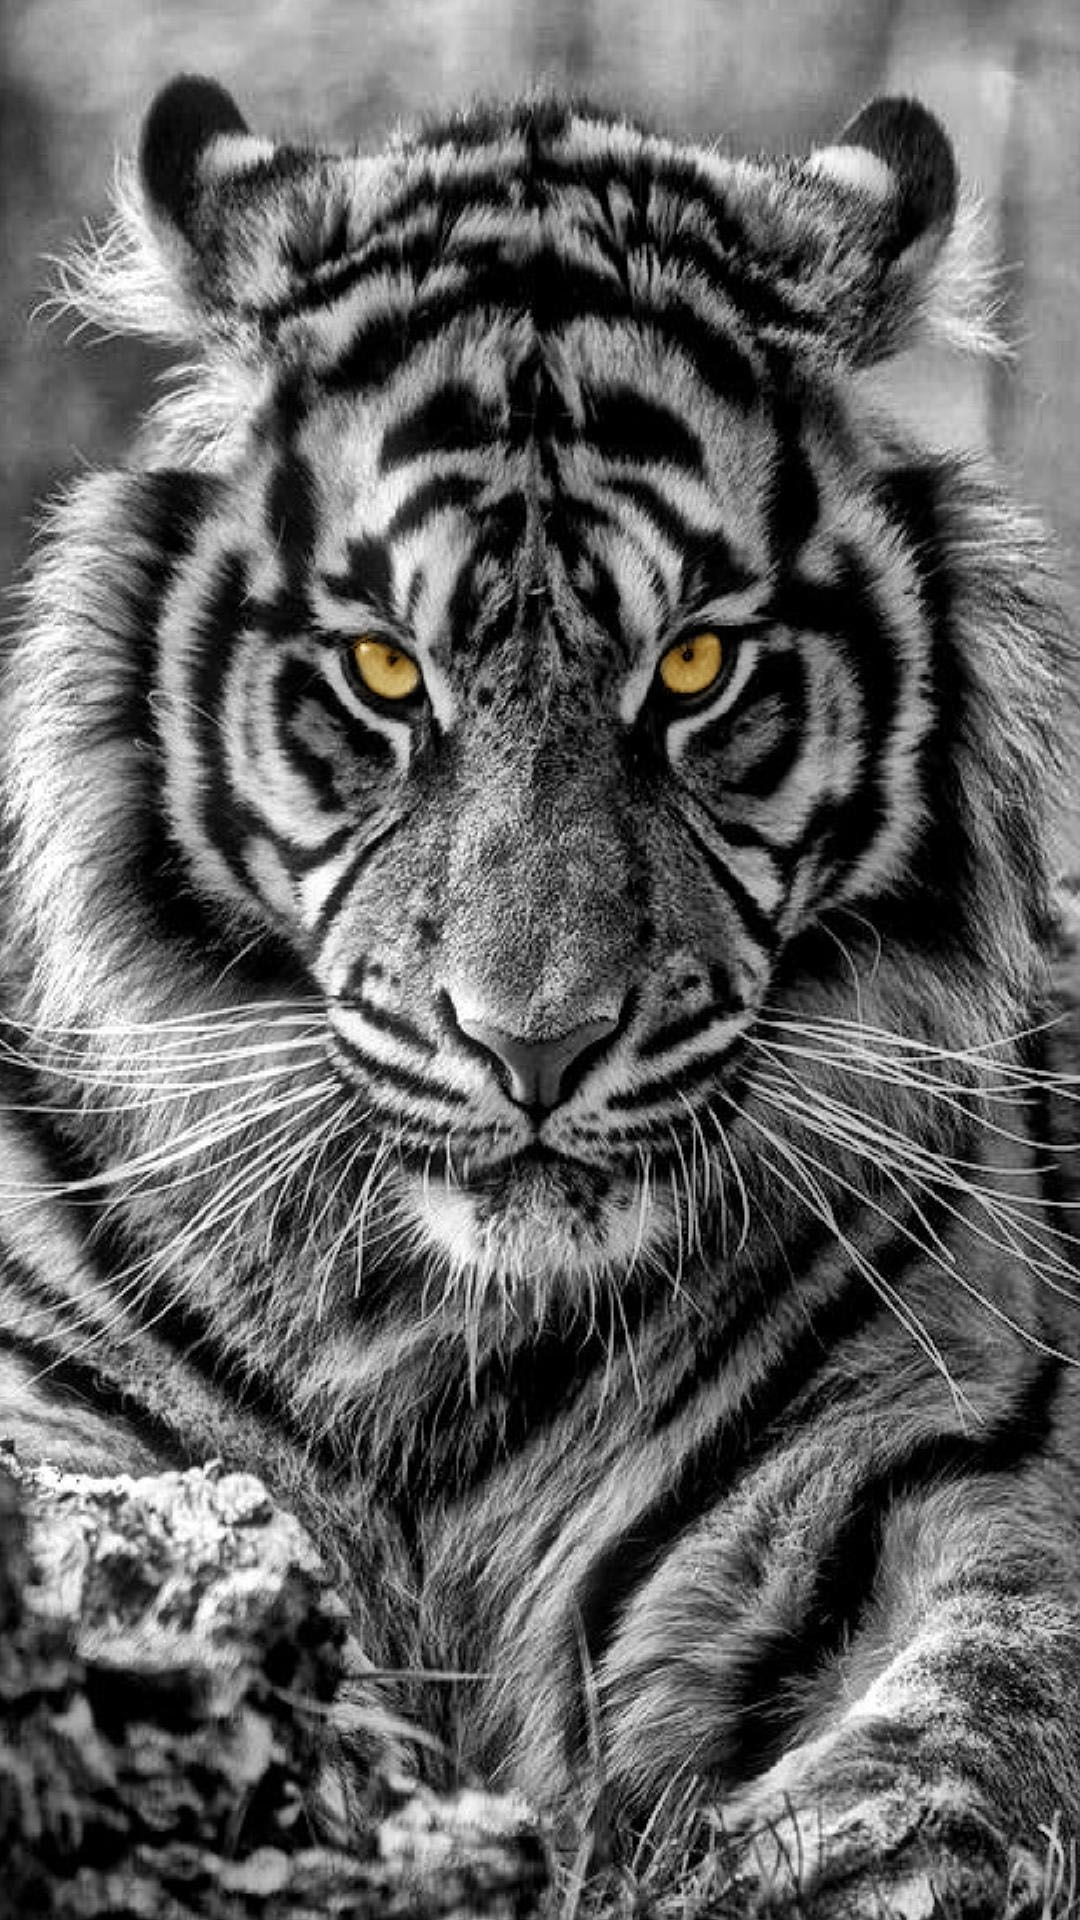 Tiger Wallpaper Mobile On High Definition Wallpaper On Flowerswallpaper Info If You Like It Iphone Androi In 2020 Tiger Photography Tiger Tattoo Design White Tiger